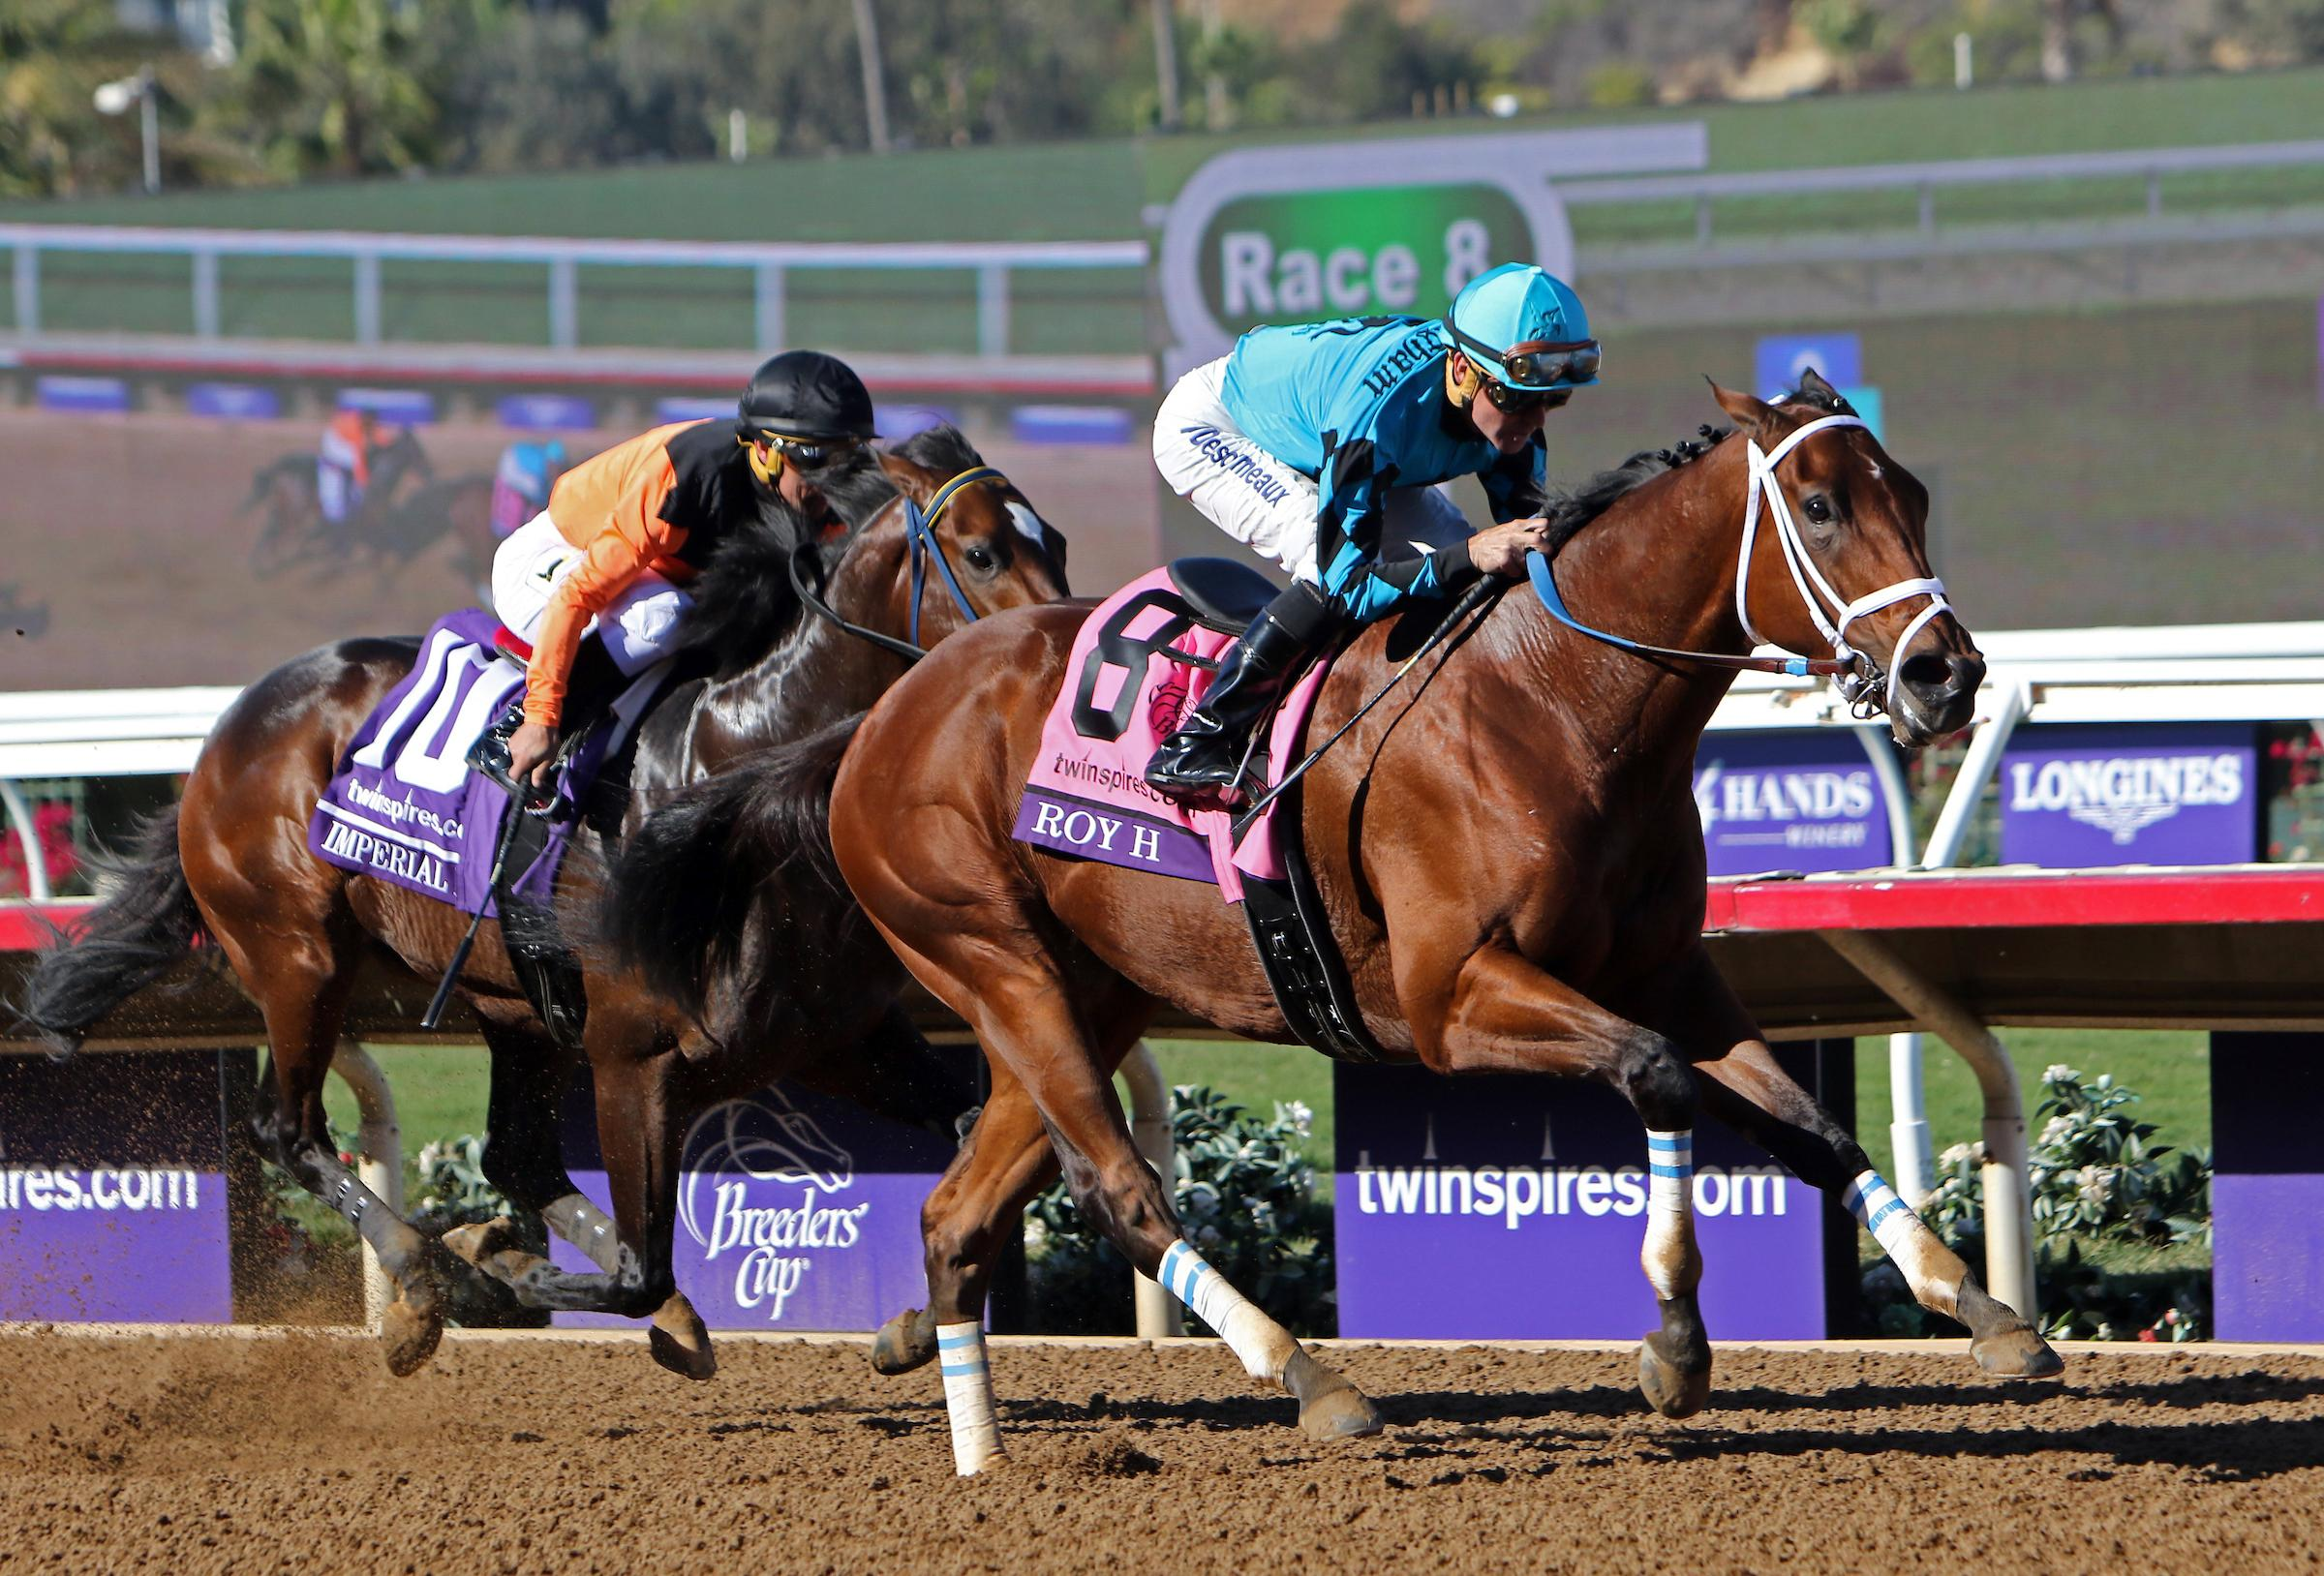 Breeders Cup Under The Microscope Analyzing The Sprint